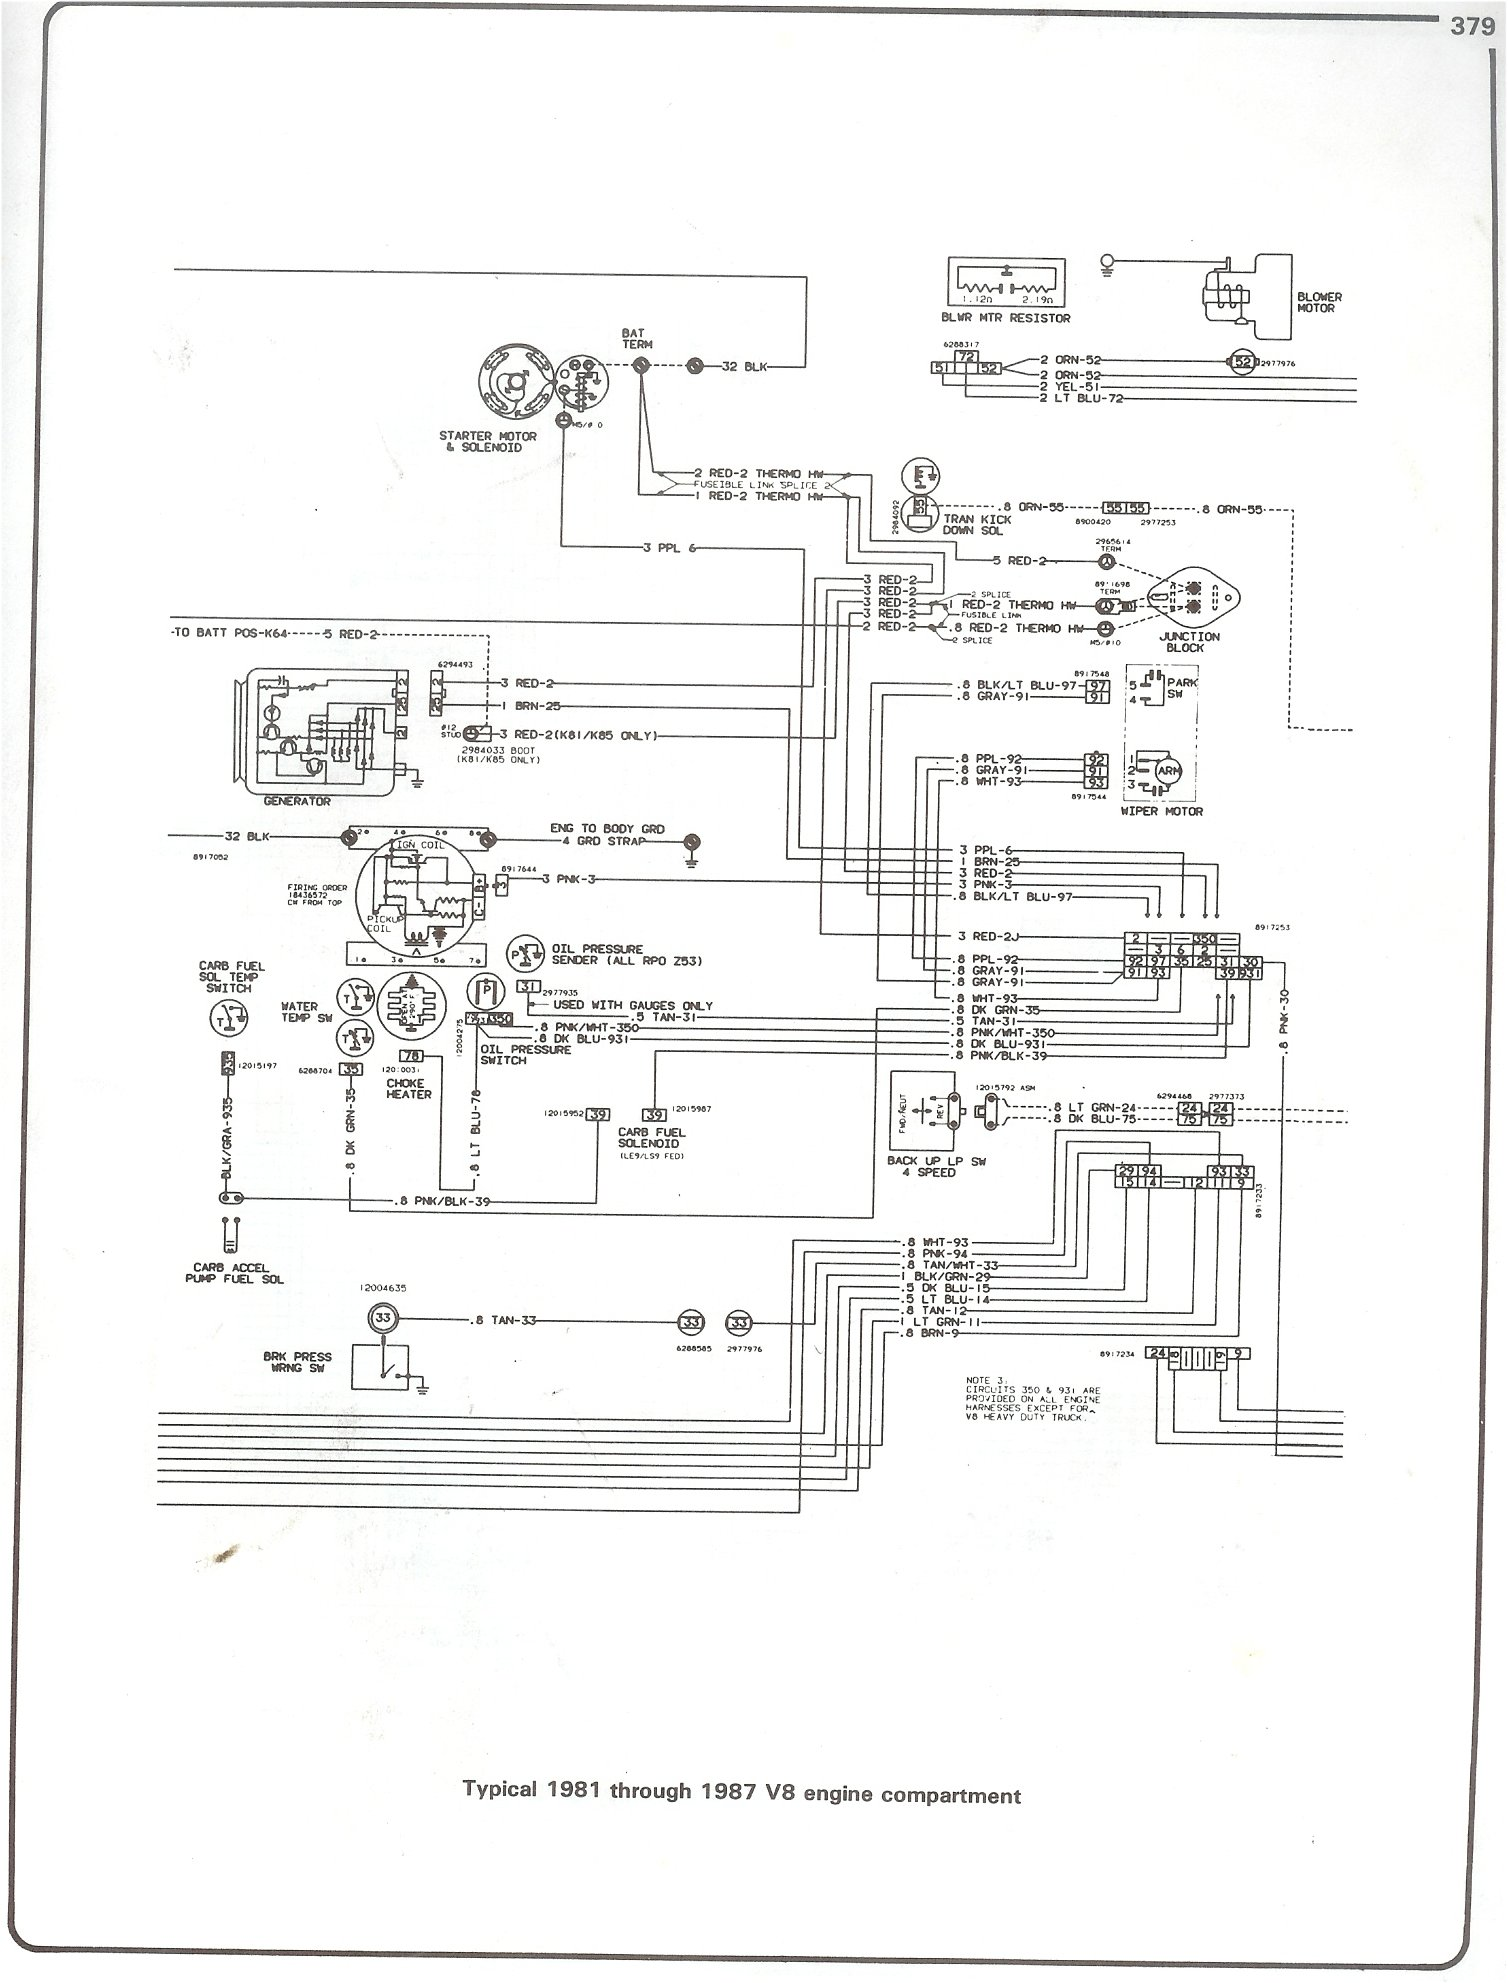 97 Chevy Astro Van Wiring Diagram Download Diagrams 1999 Complete 73 87 1994